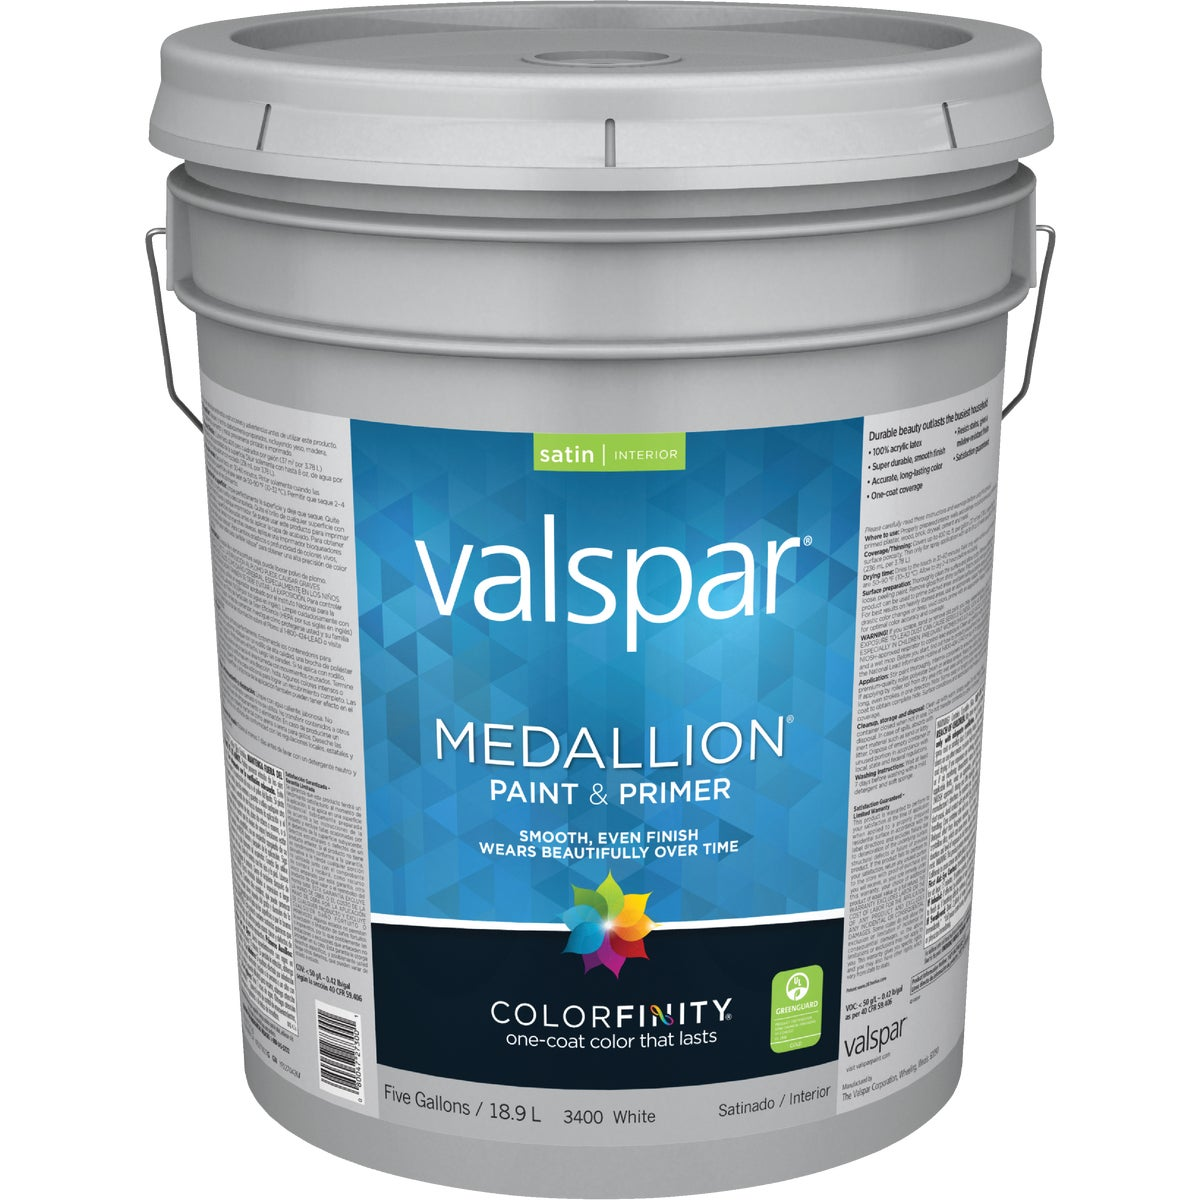 5GAL INT SAT WHITE PAINT - 027.0003400.008 by Valspar Corp